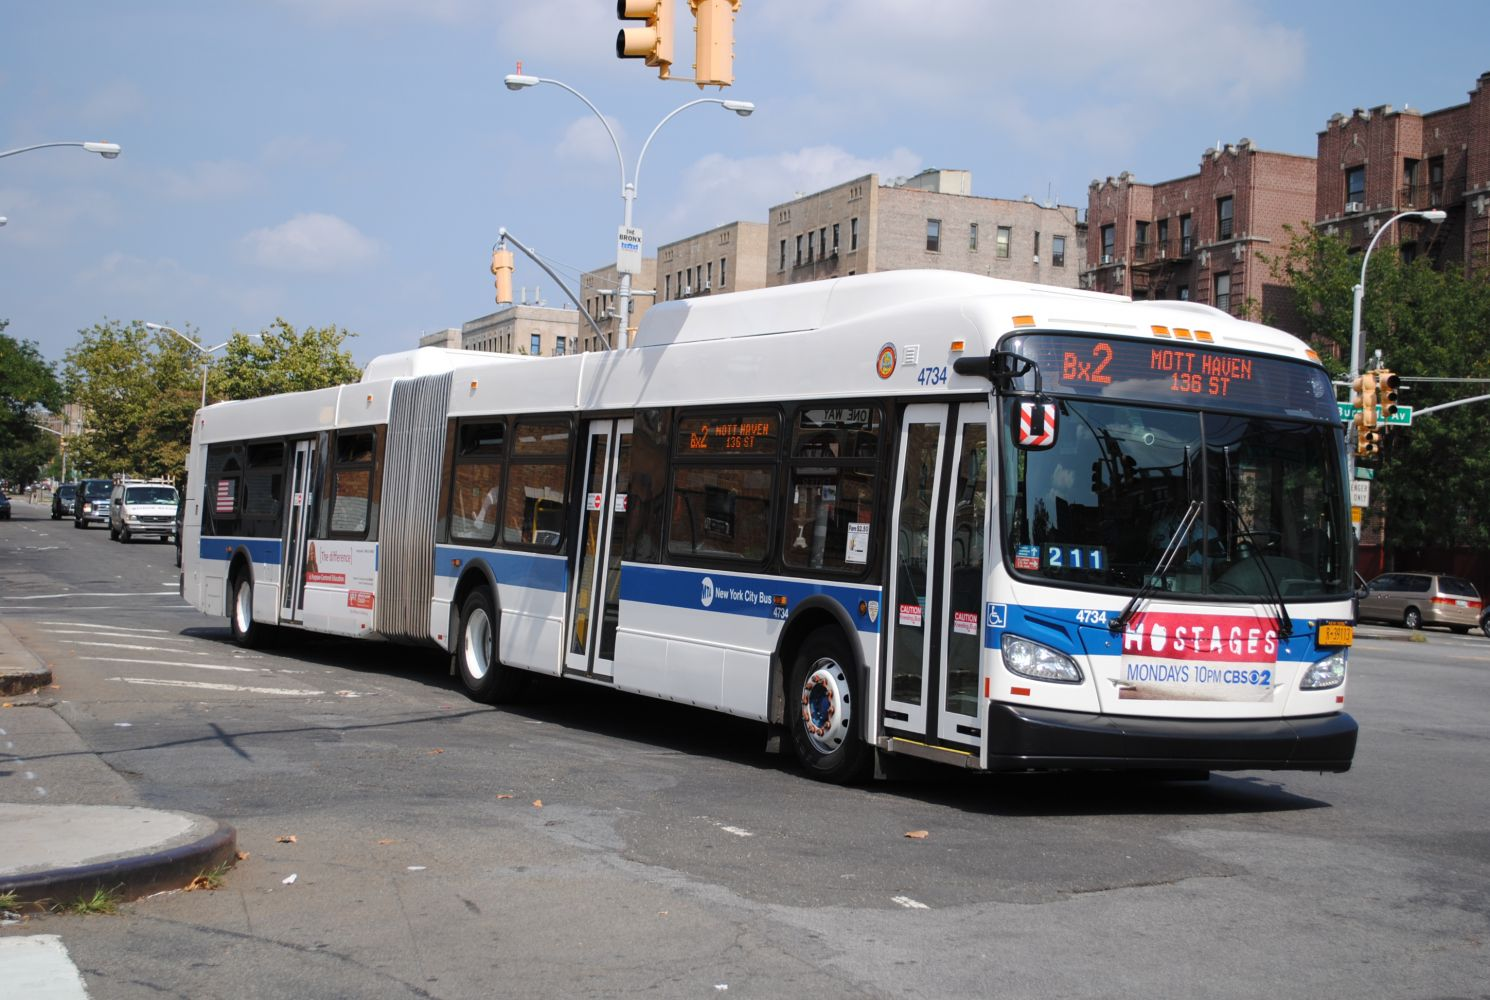 New Flyer XD60 4739 on the Bx2